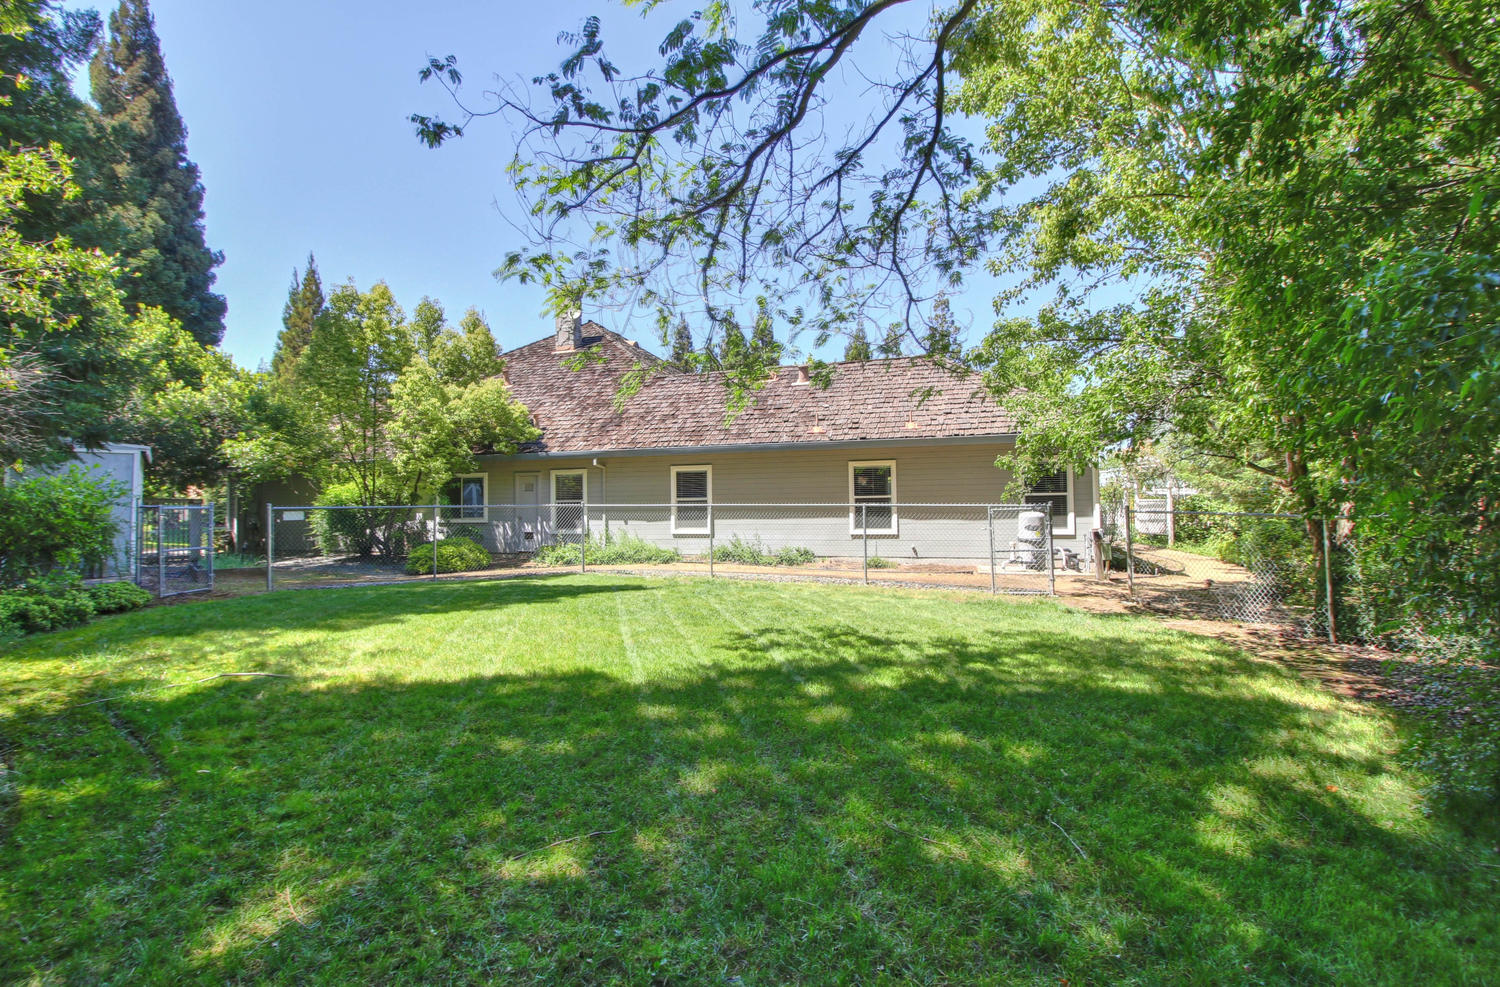 3594 Old Country Ct Roseville-large-042-40-42-1500x988-72dpi